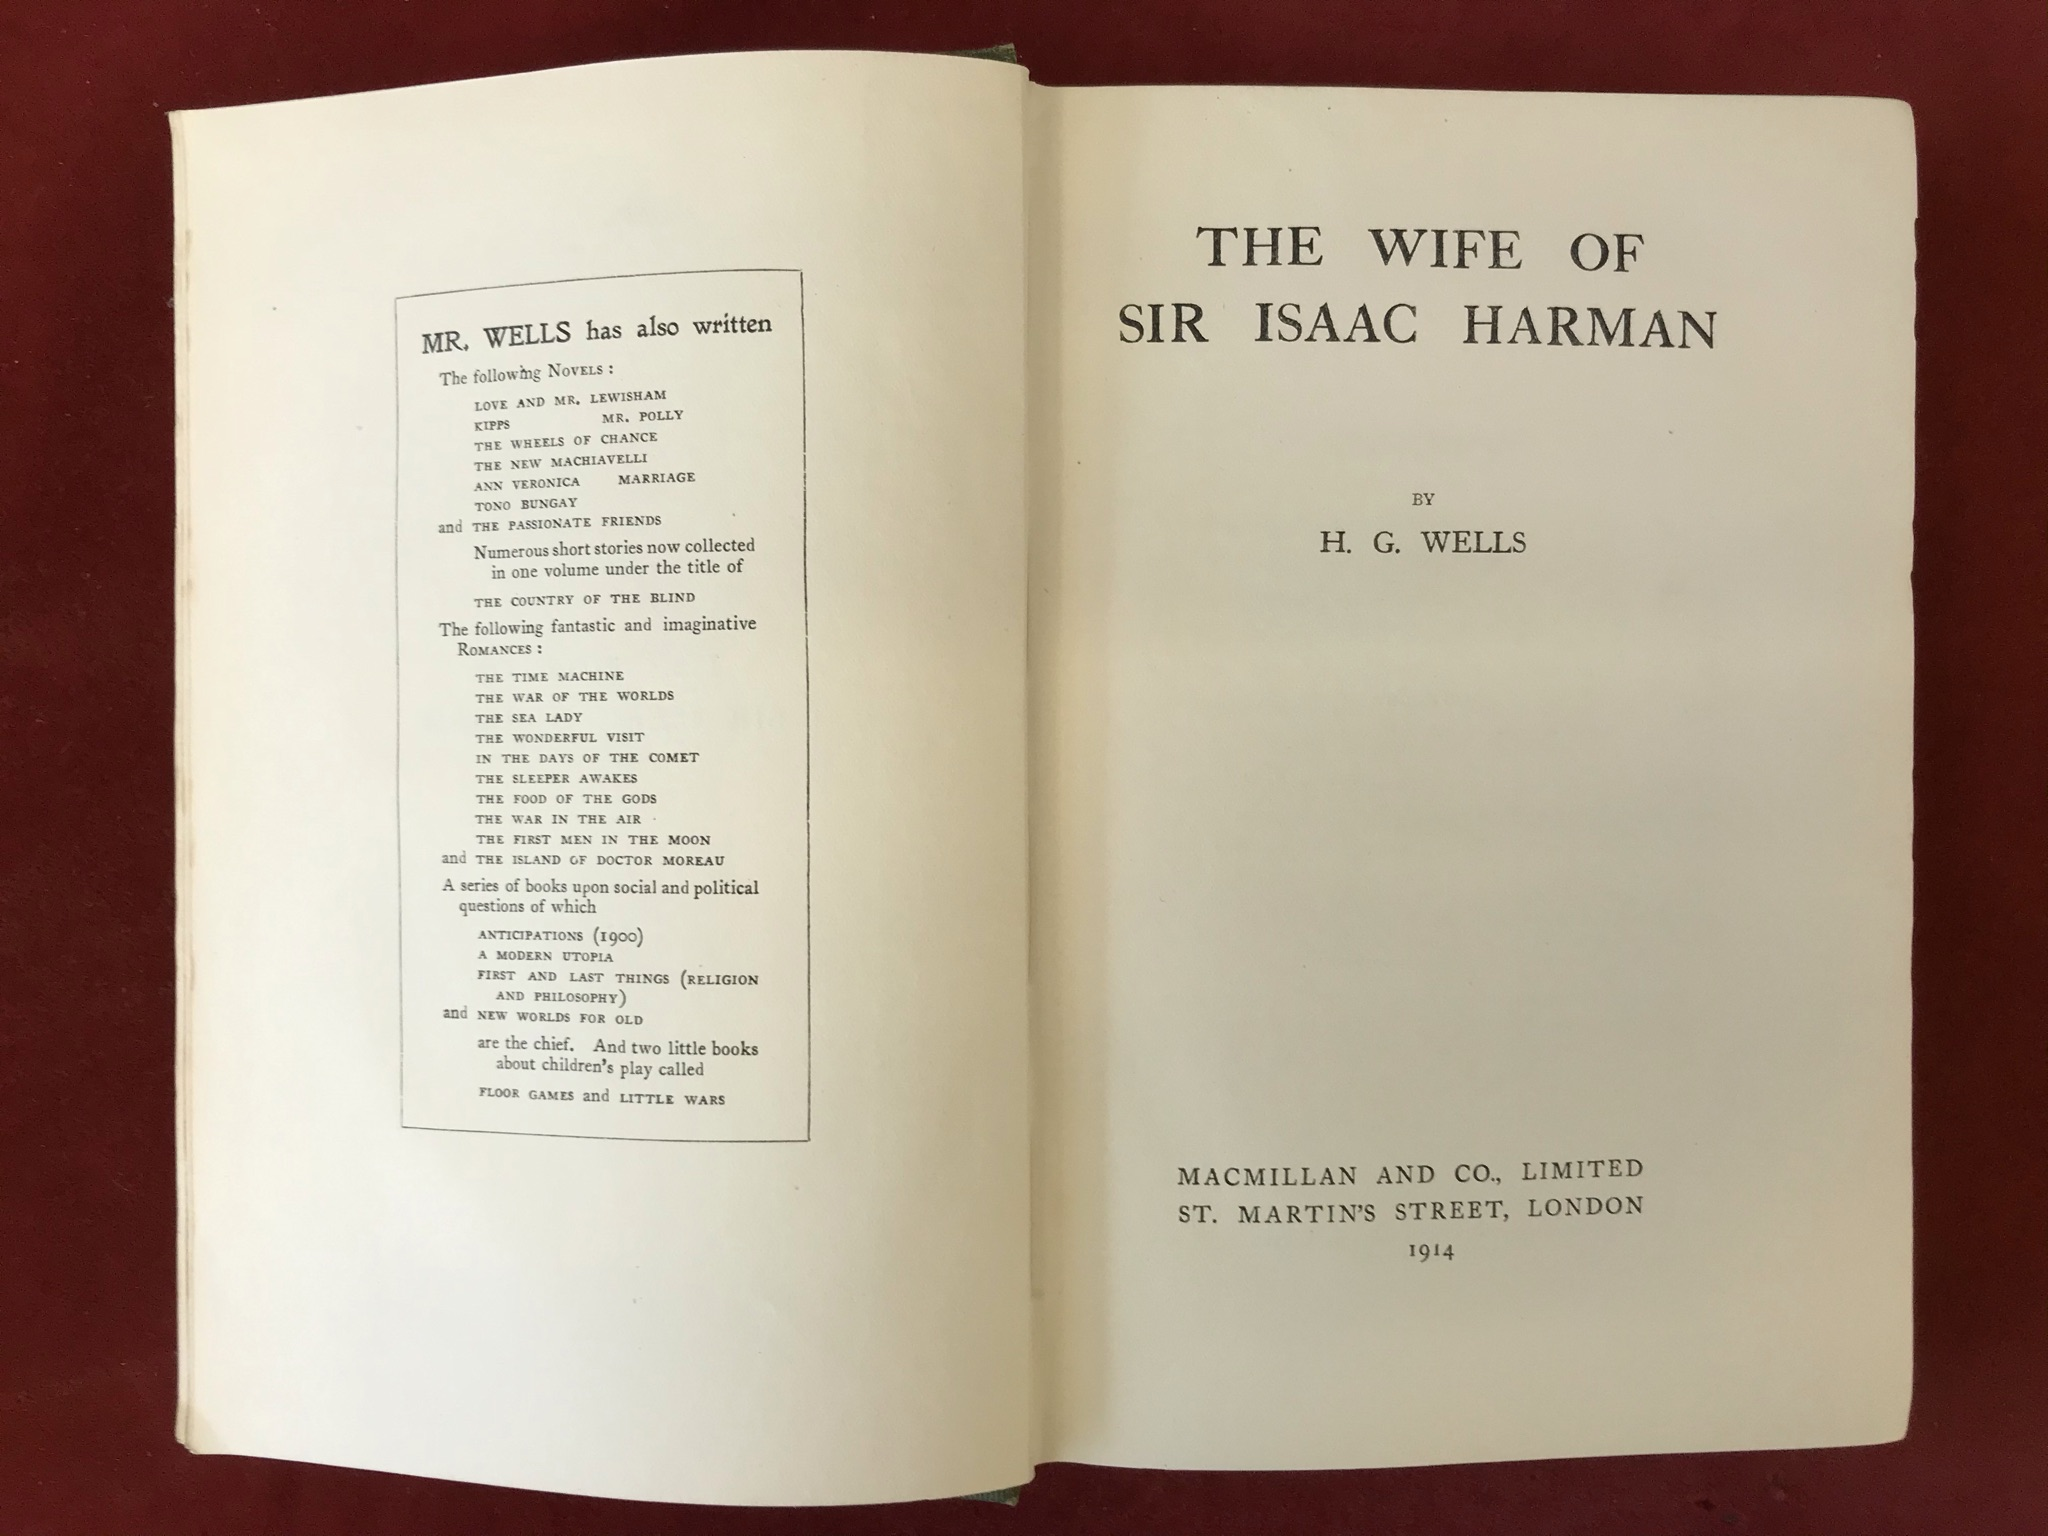 The Wife of Sir Isaac HarmanFirst edition, 1914 - Image 3 of 3